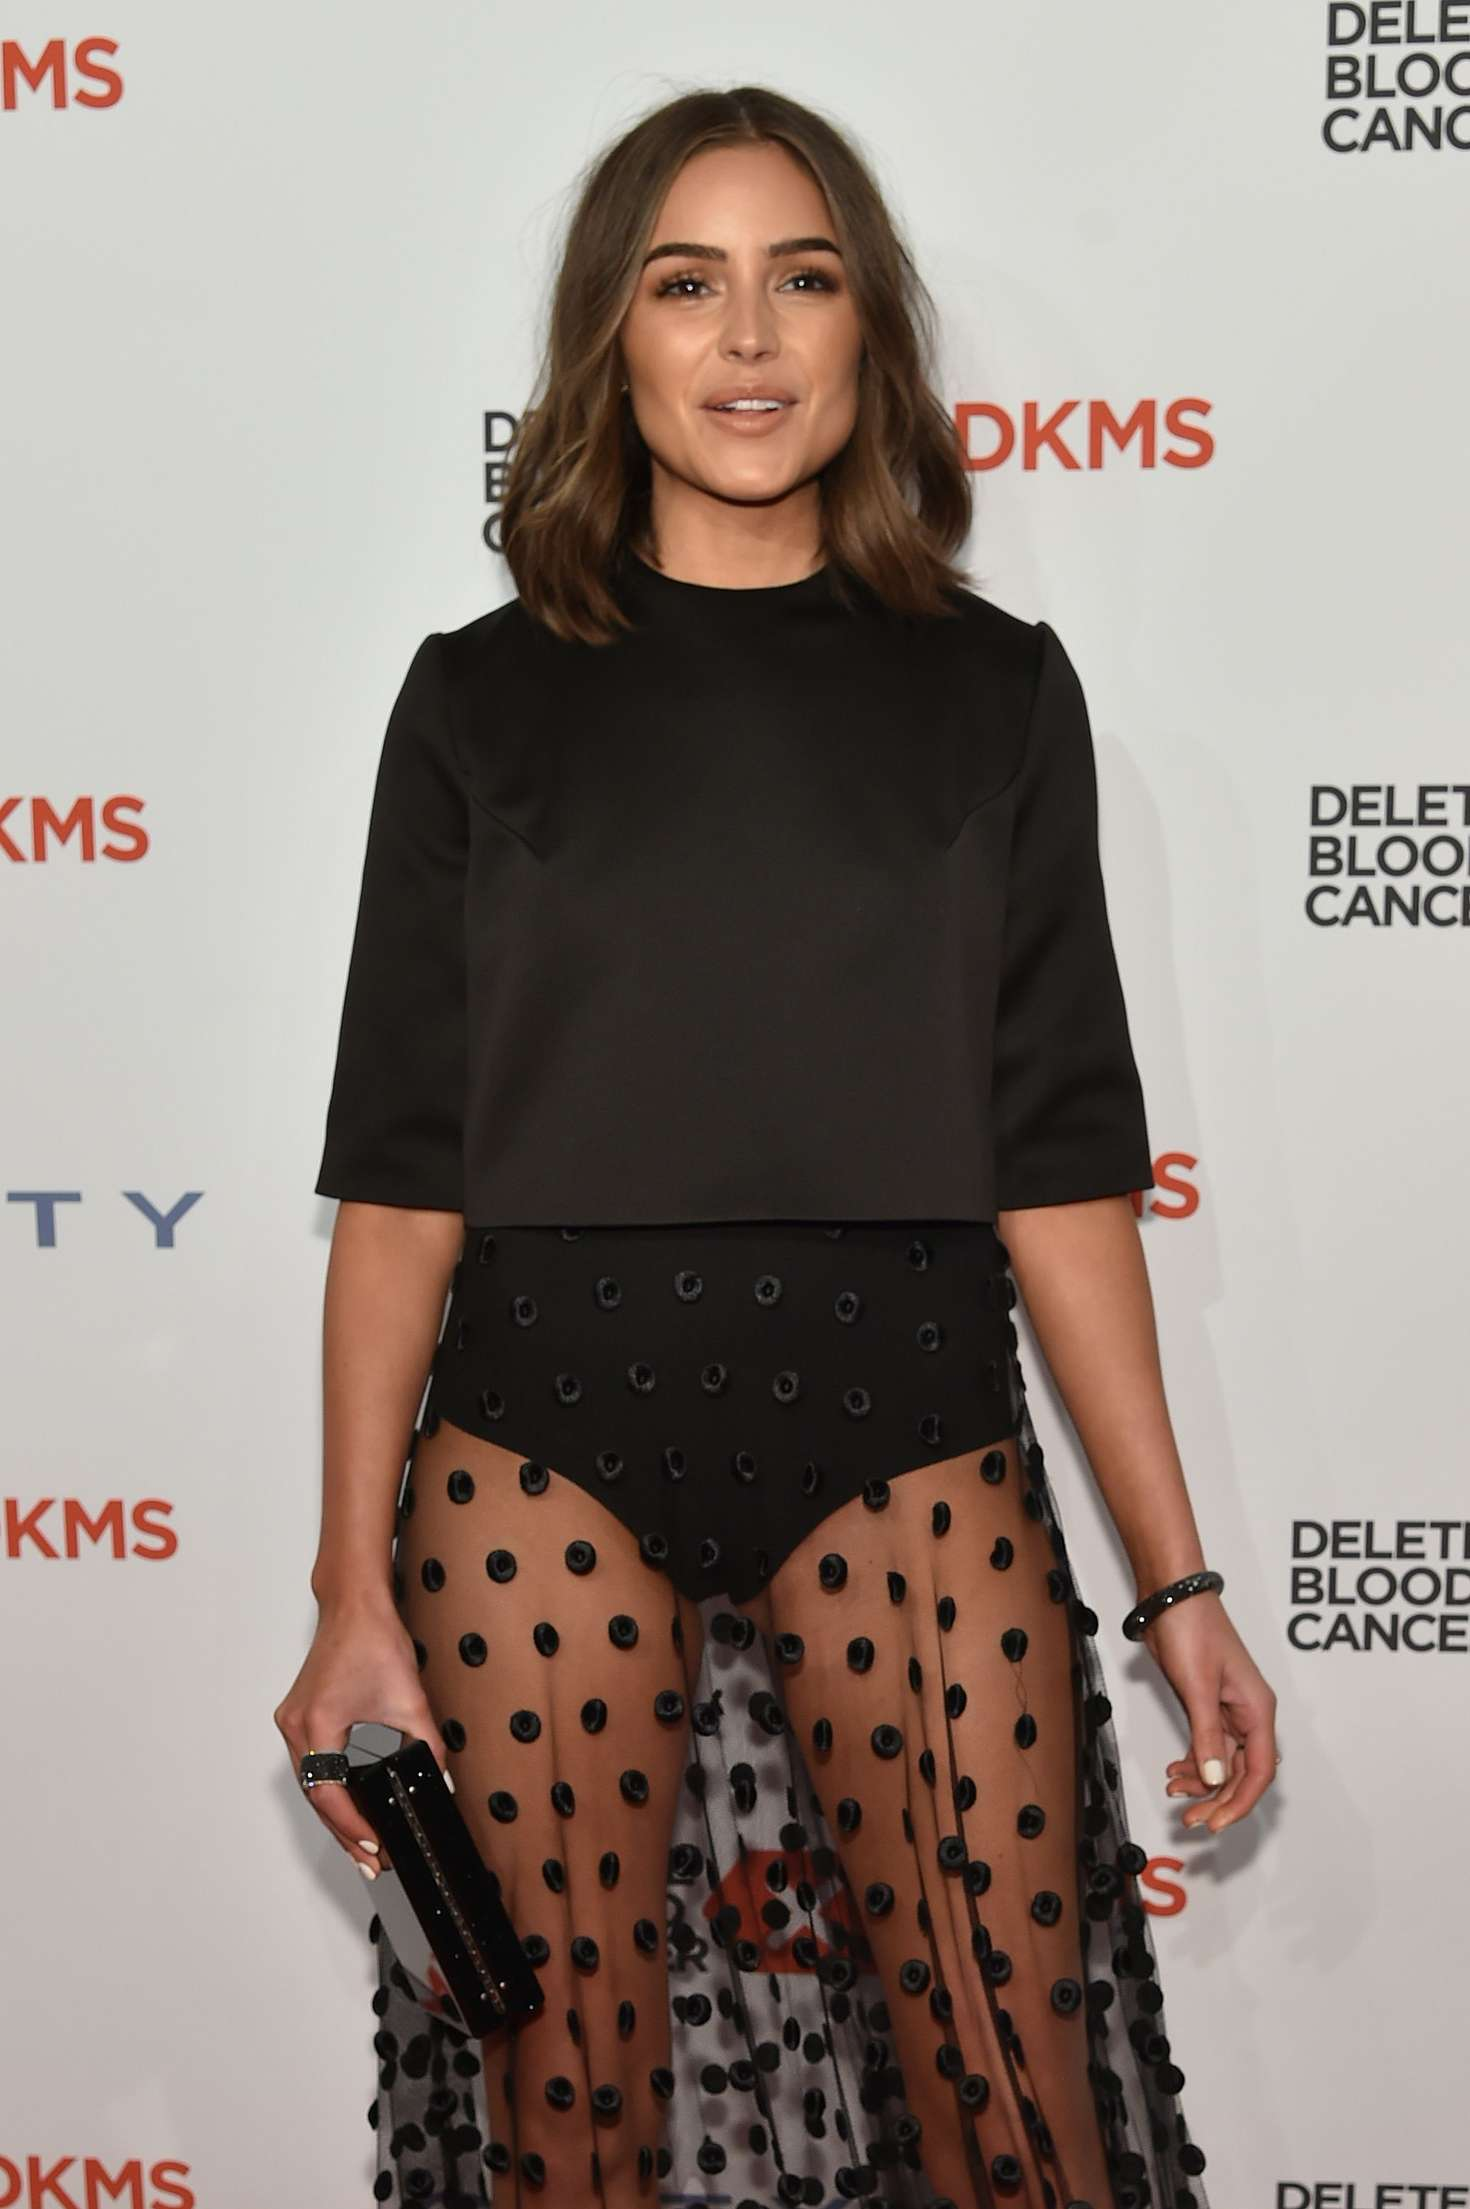 Olivia Culpo - 10th Annual Delete Blood Cancer DKMS Gala in New York